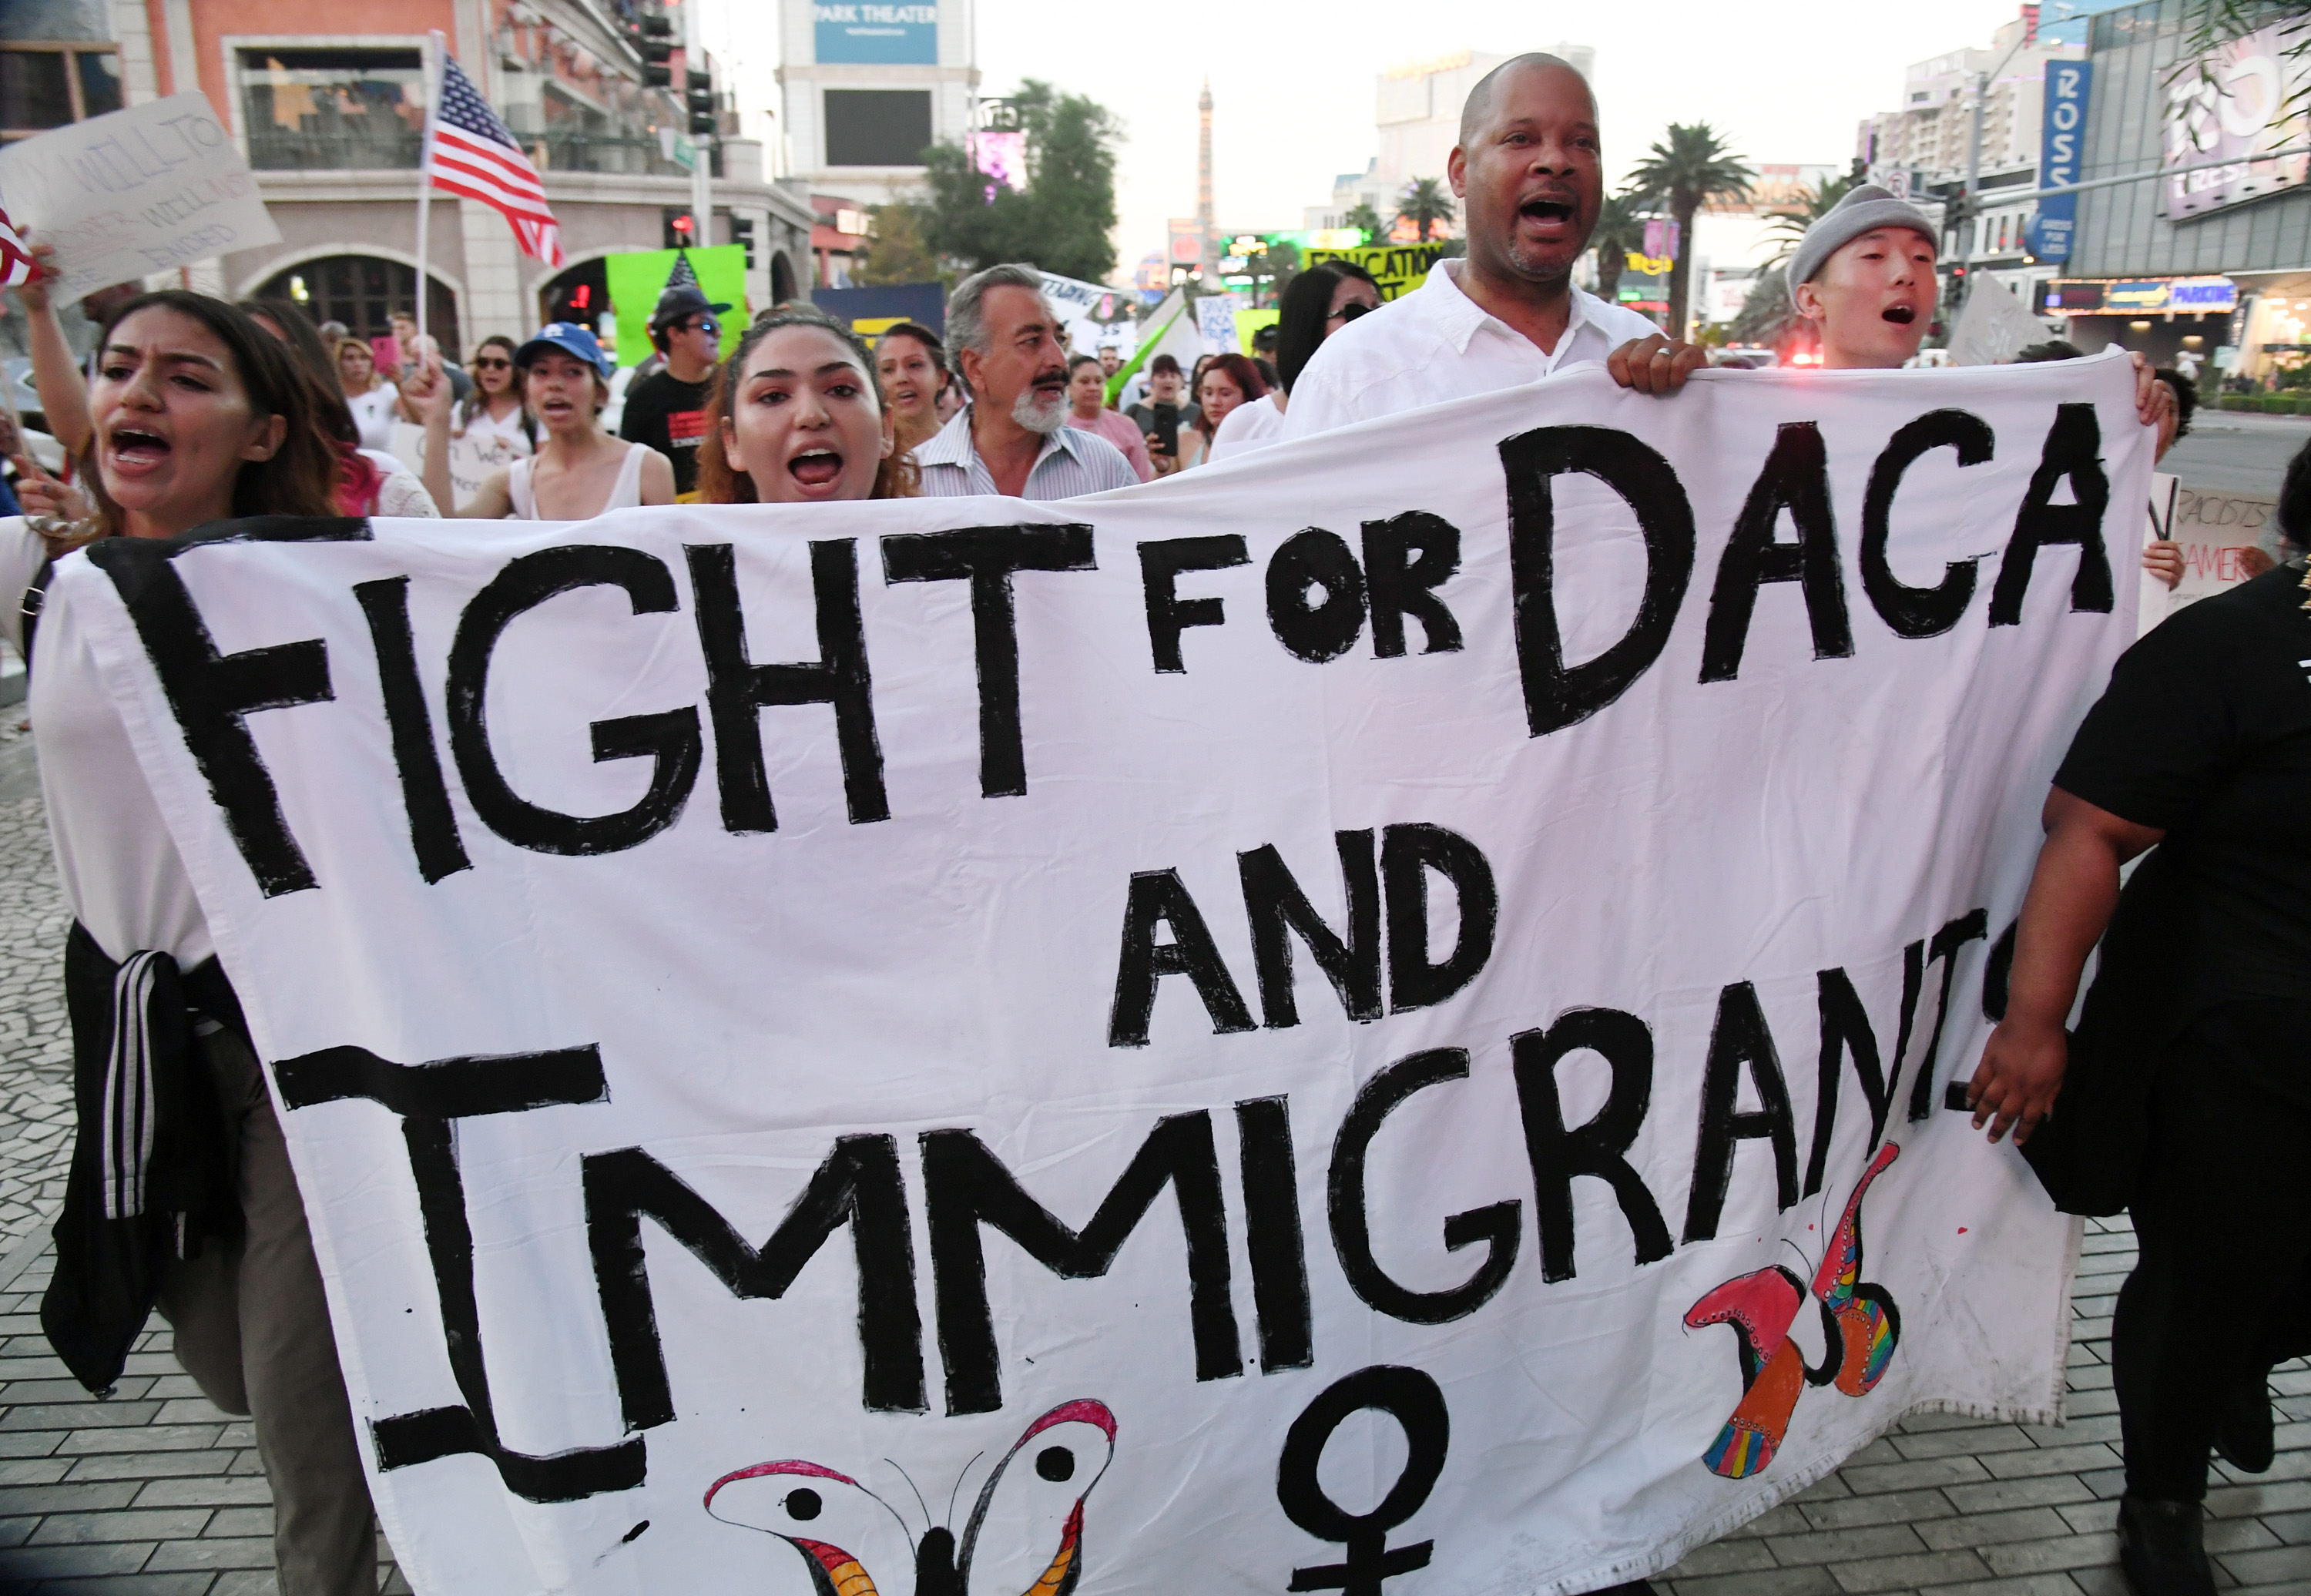 Hundreds Join 'Defend DACA' March In Las Vegas